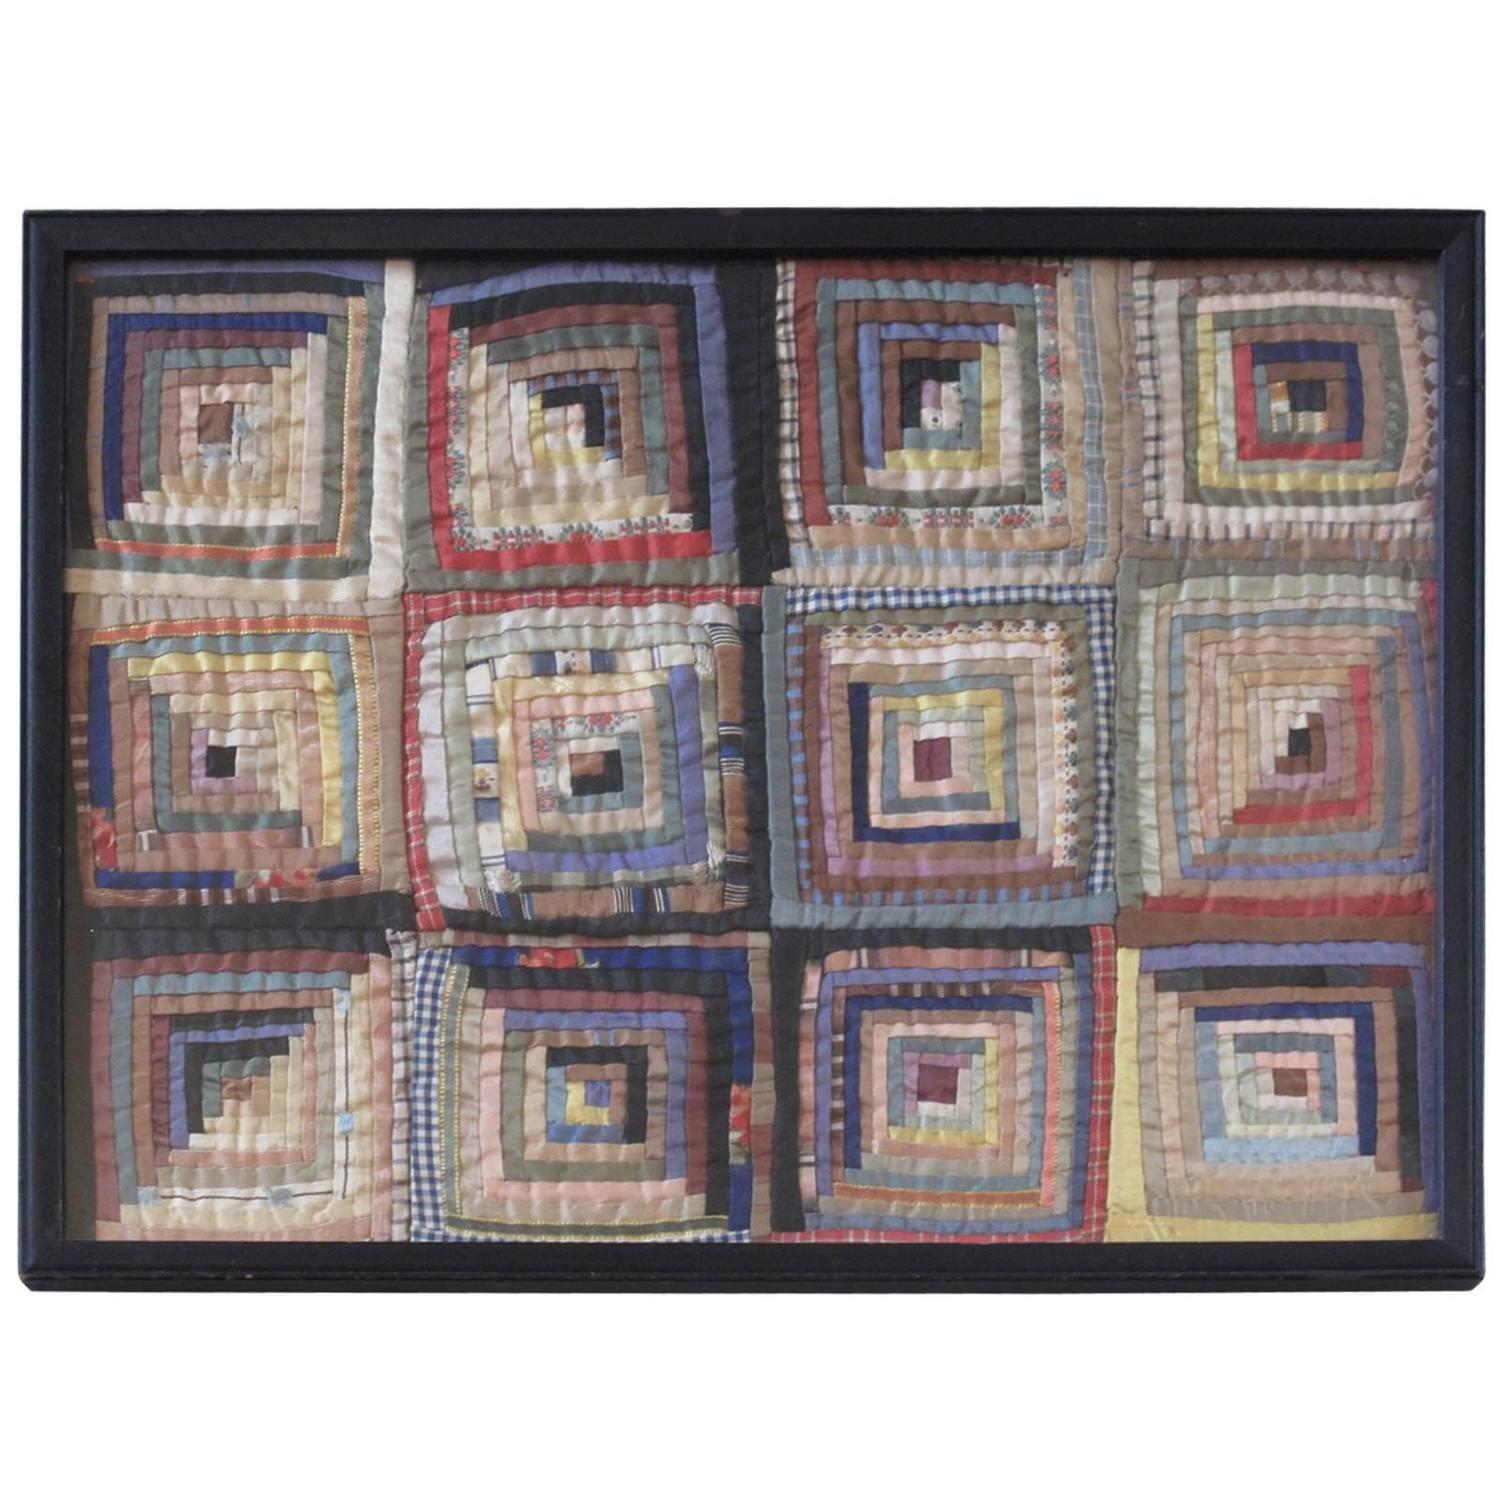 Miniature Framed Courthouse Steps Quilt Fragment For Sale At 1stdibs. Full resolution‎  file, nominally Width 1500 Height 1500 pixels, file with #7D6B4E.